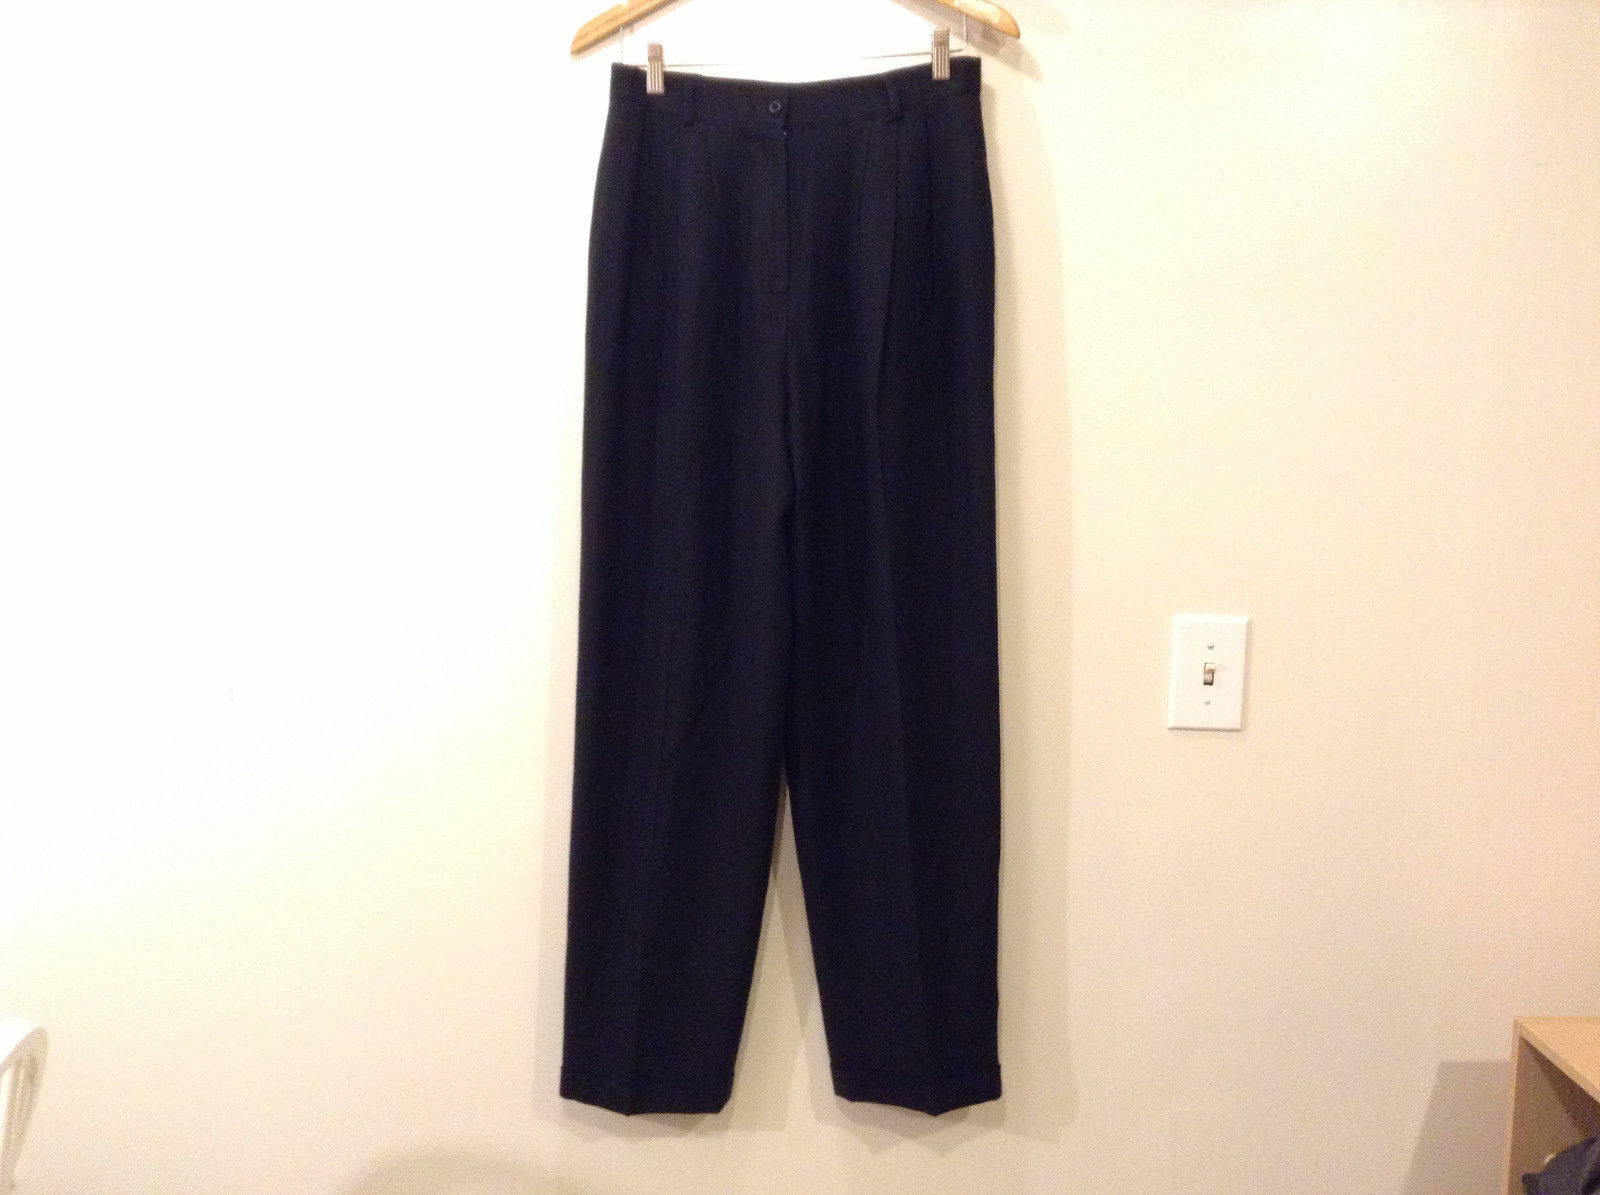 Jones New York Women's Size 12 Pants Black 100% Wool Pleated Creased Leg Tapered